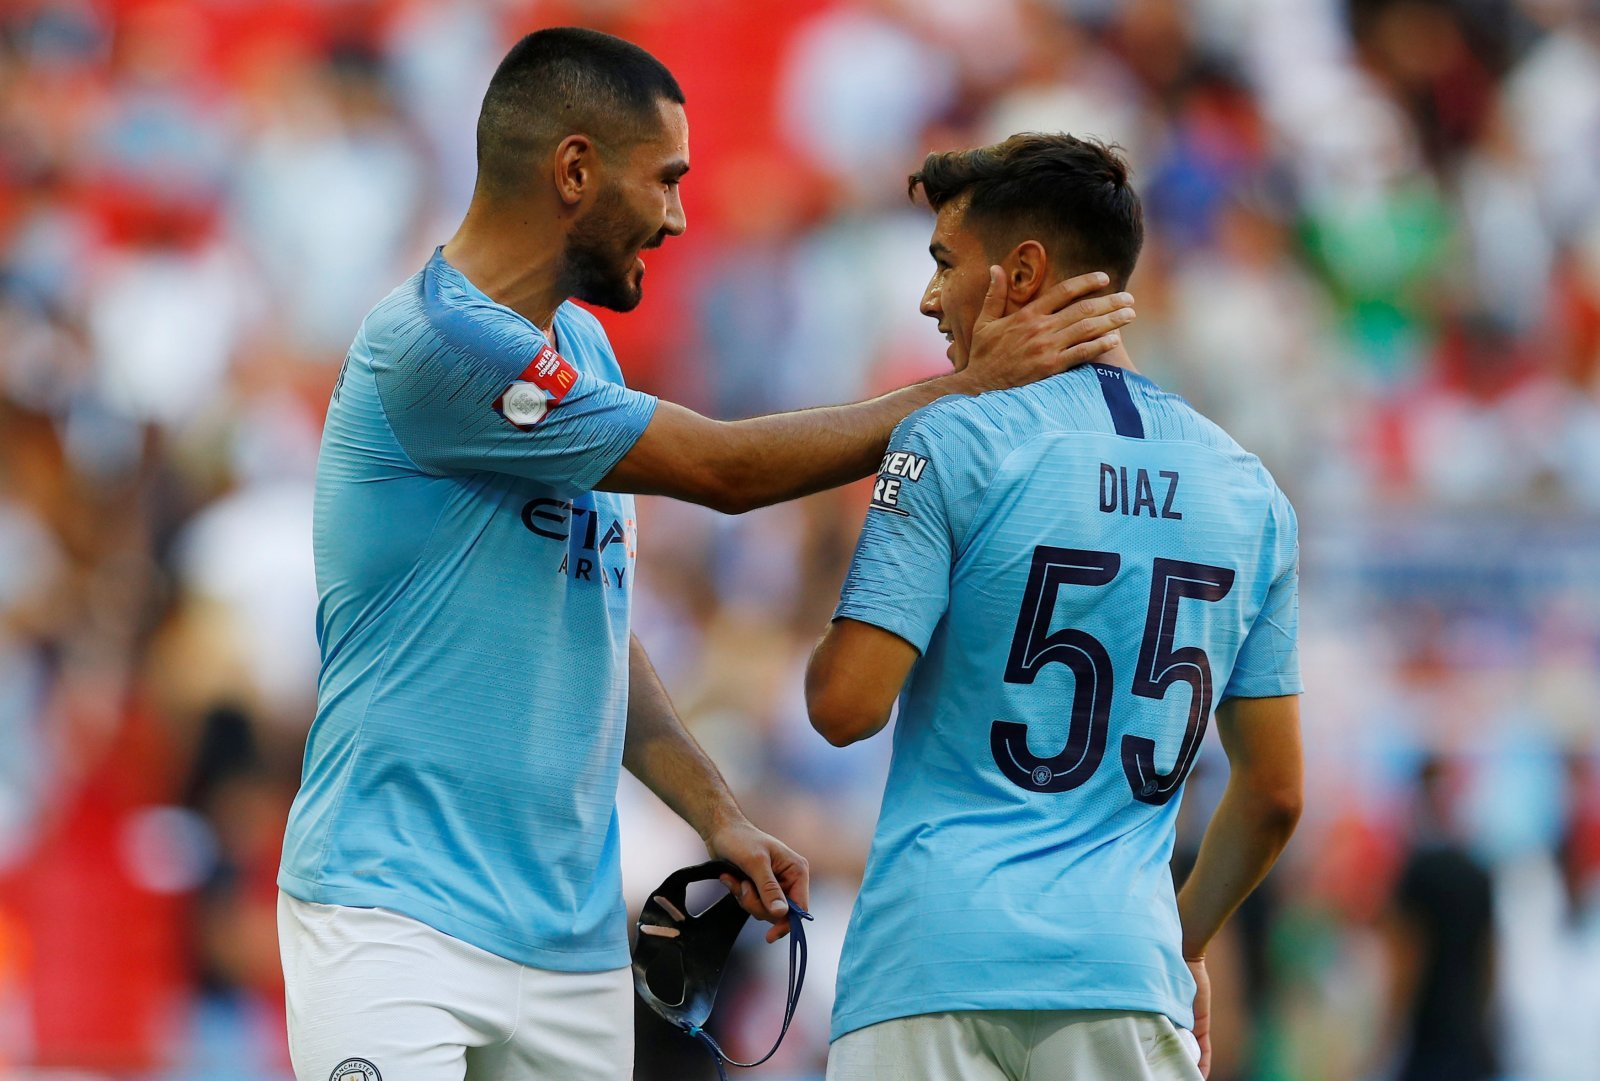 Aston Villa should submit loan bid for Brahim Diaz before August 31st